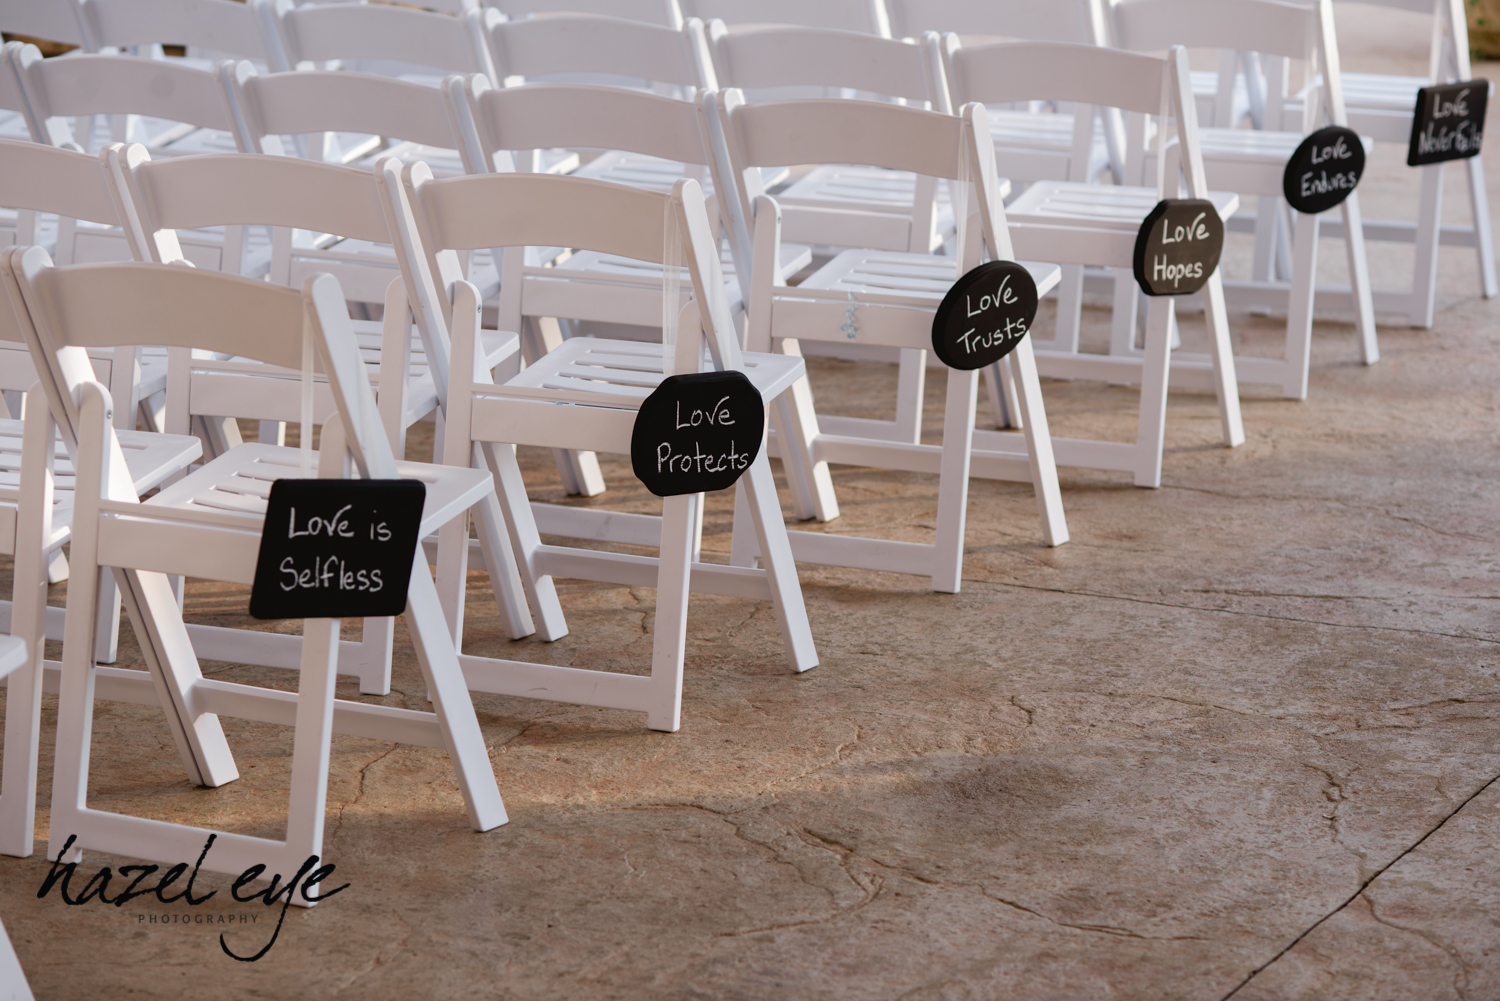 Wedding Aisle Decor.Wow Your Guests With These Wedding Aisle Decor Ideas East Windsor